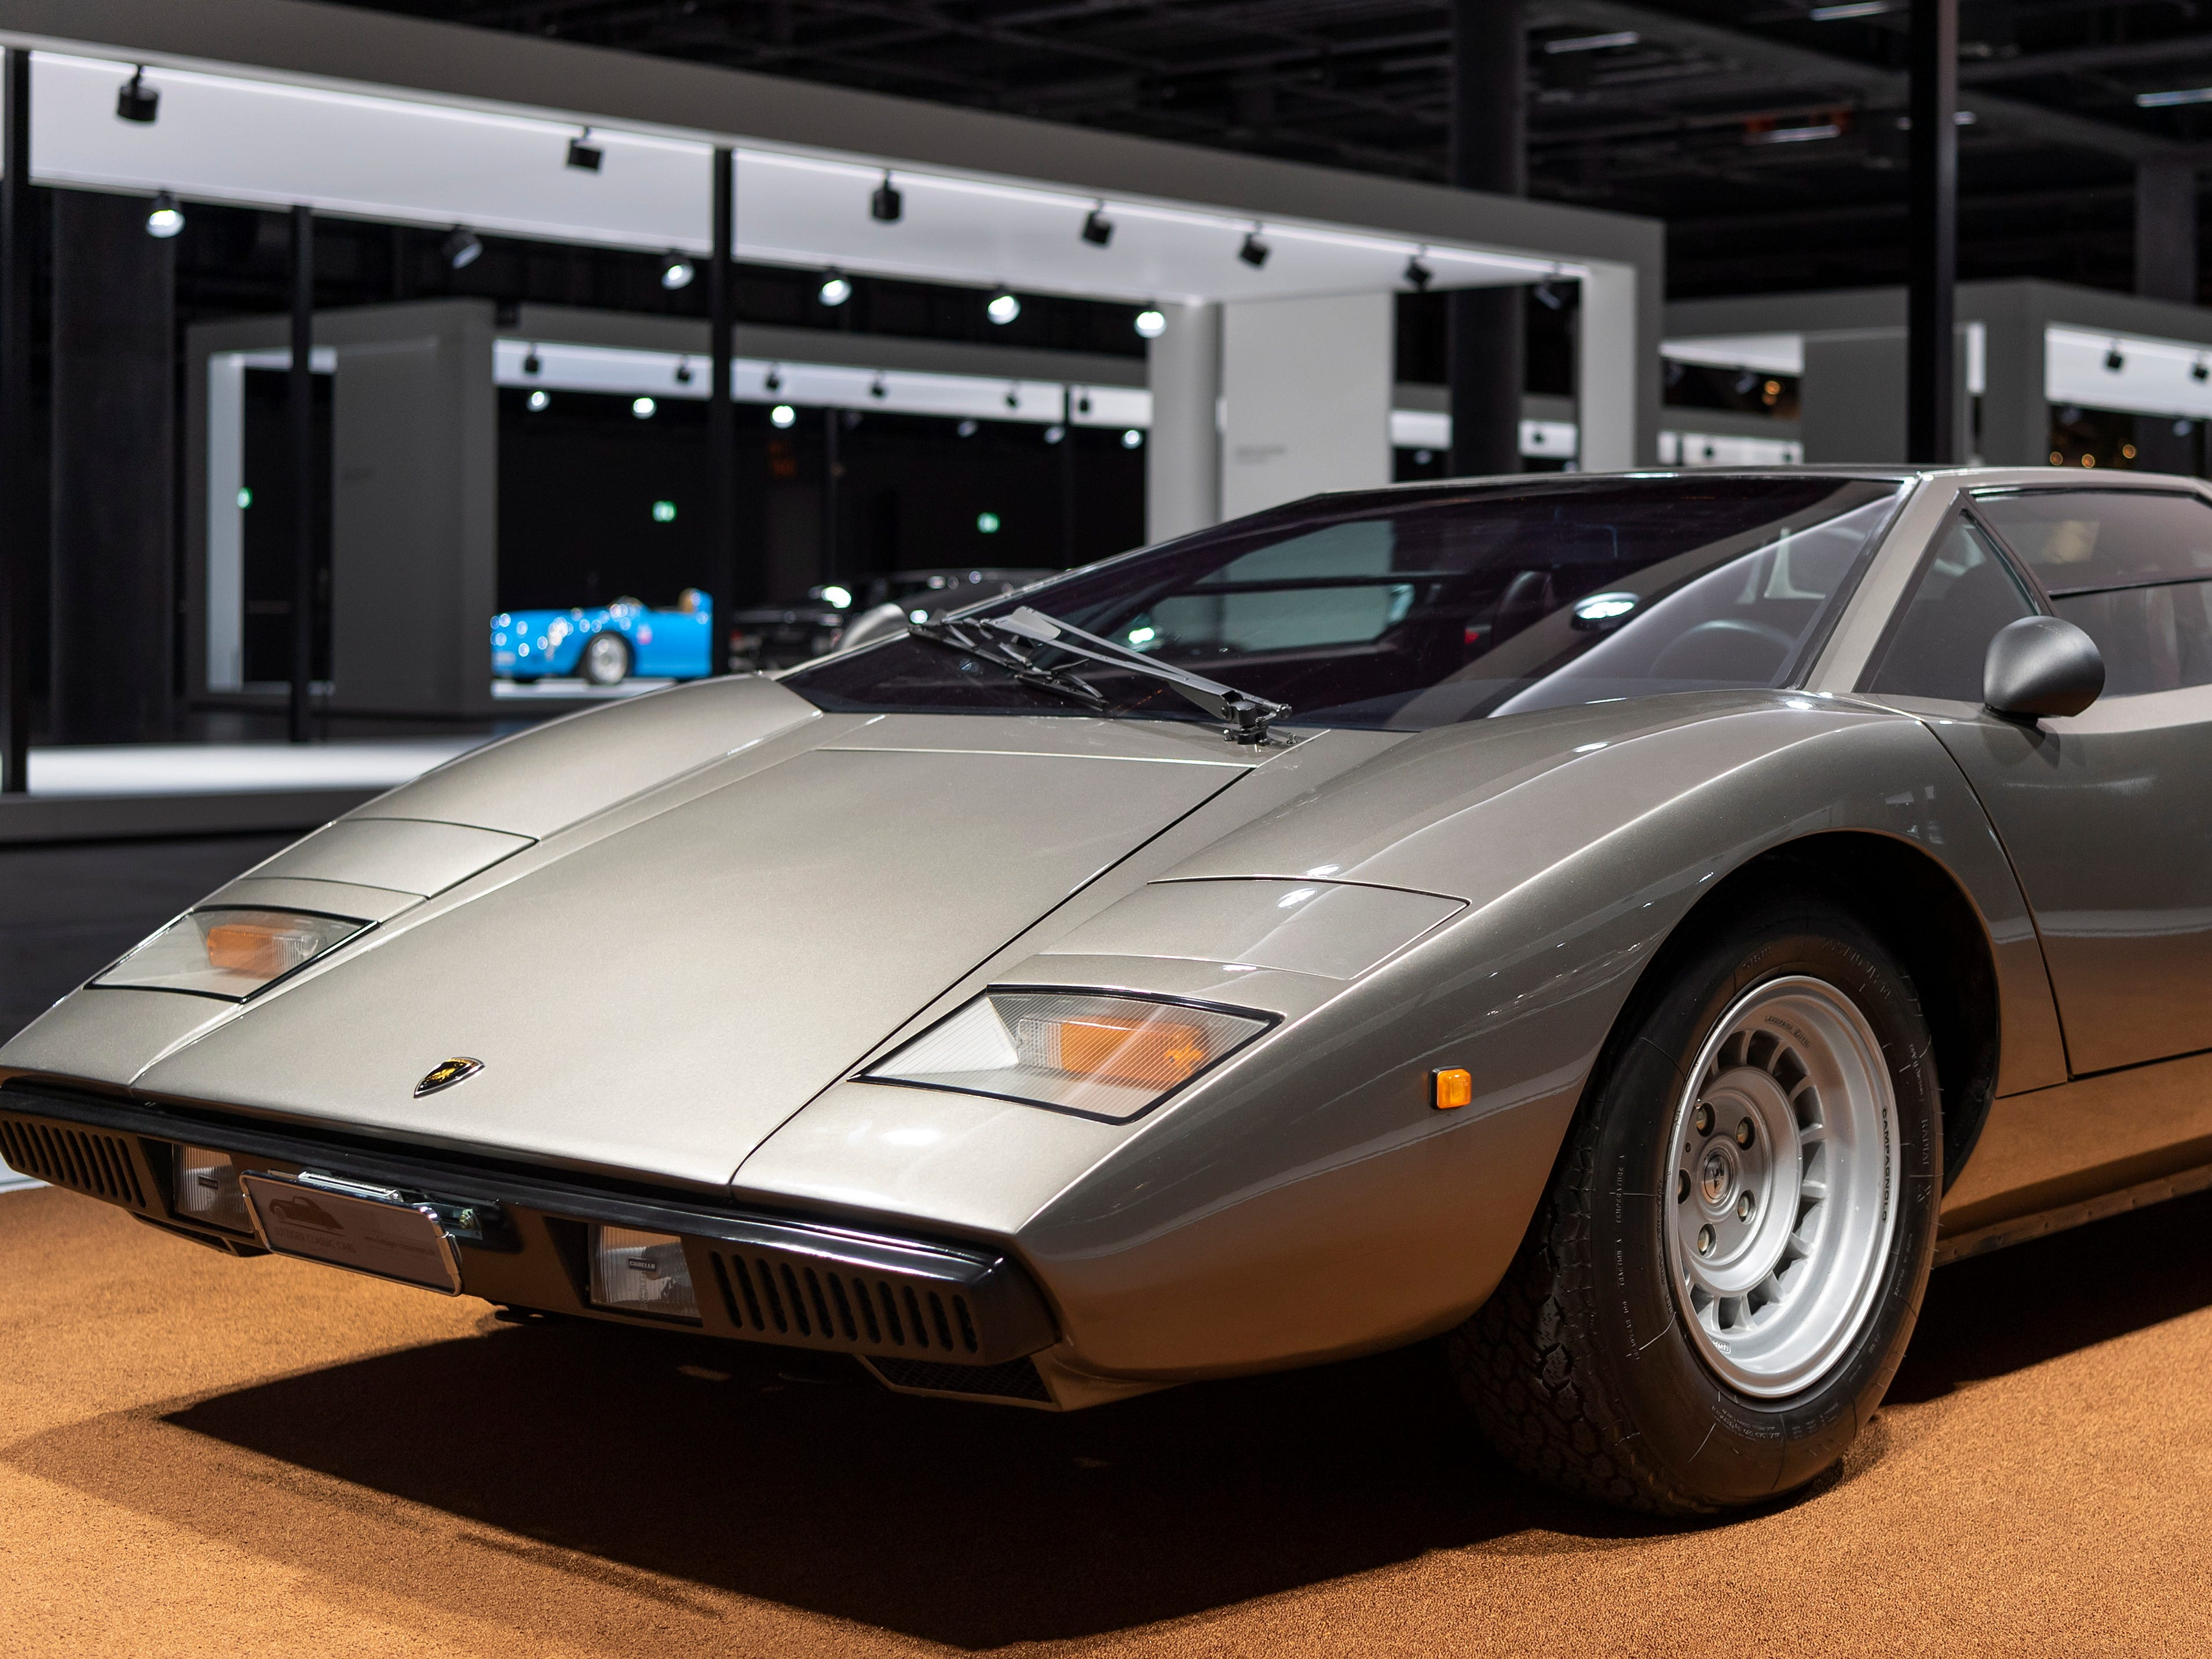 A Lamborghini Countach LP 400 (1974) on display at the Grand Basel car show in Basel, Switzerland, Sept. 5, 2018.